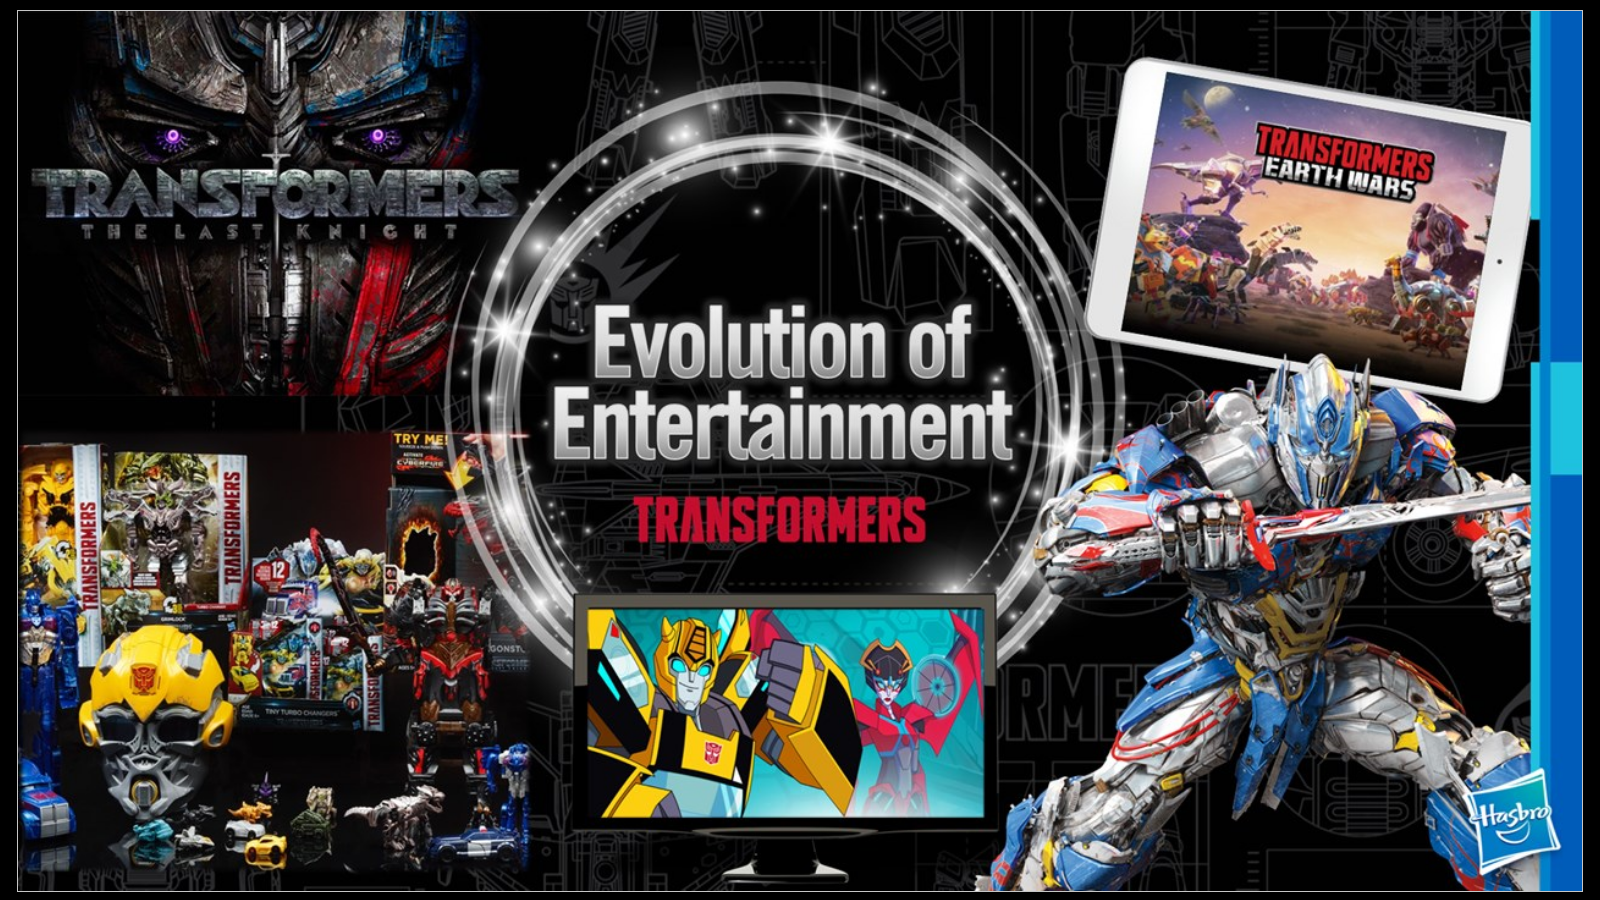 Transformers News: Transformers Live Action Film Series to be Rebooted and Transformers 6 Removed from Roadmap